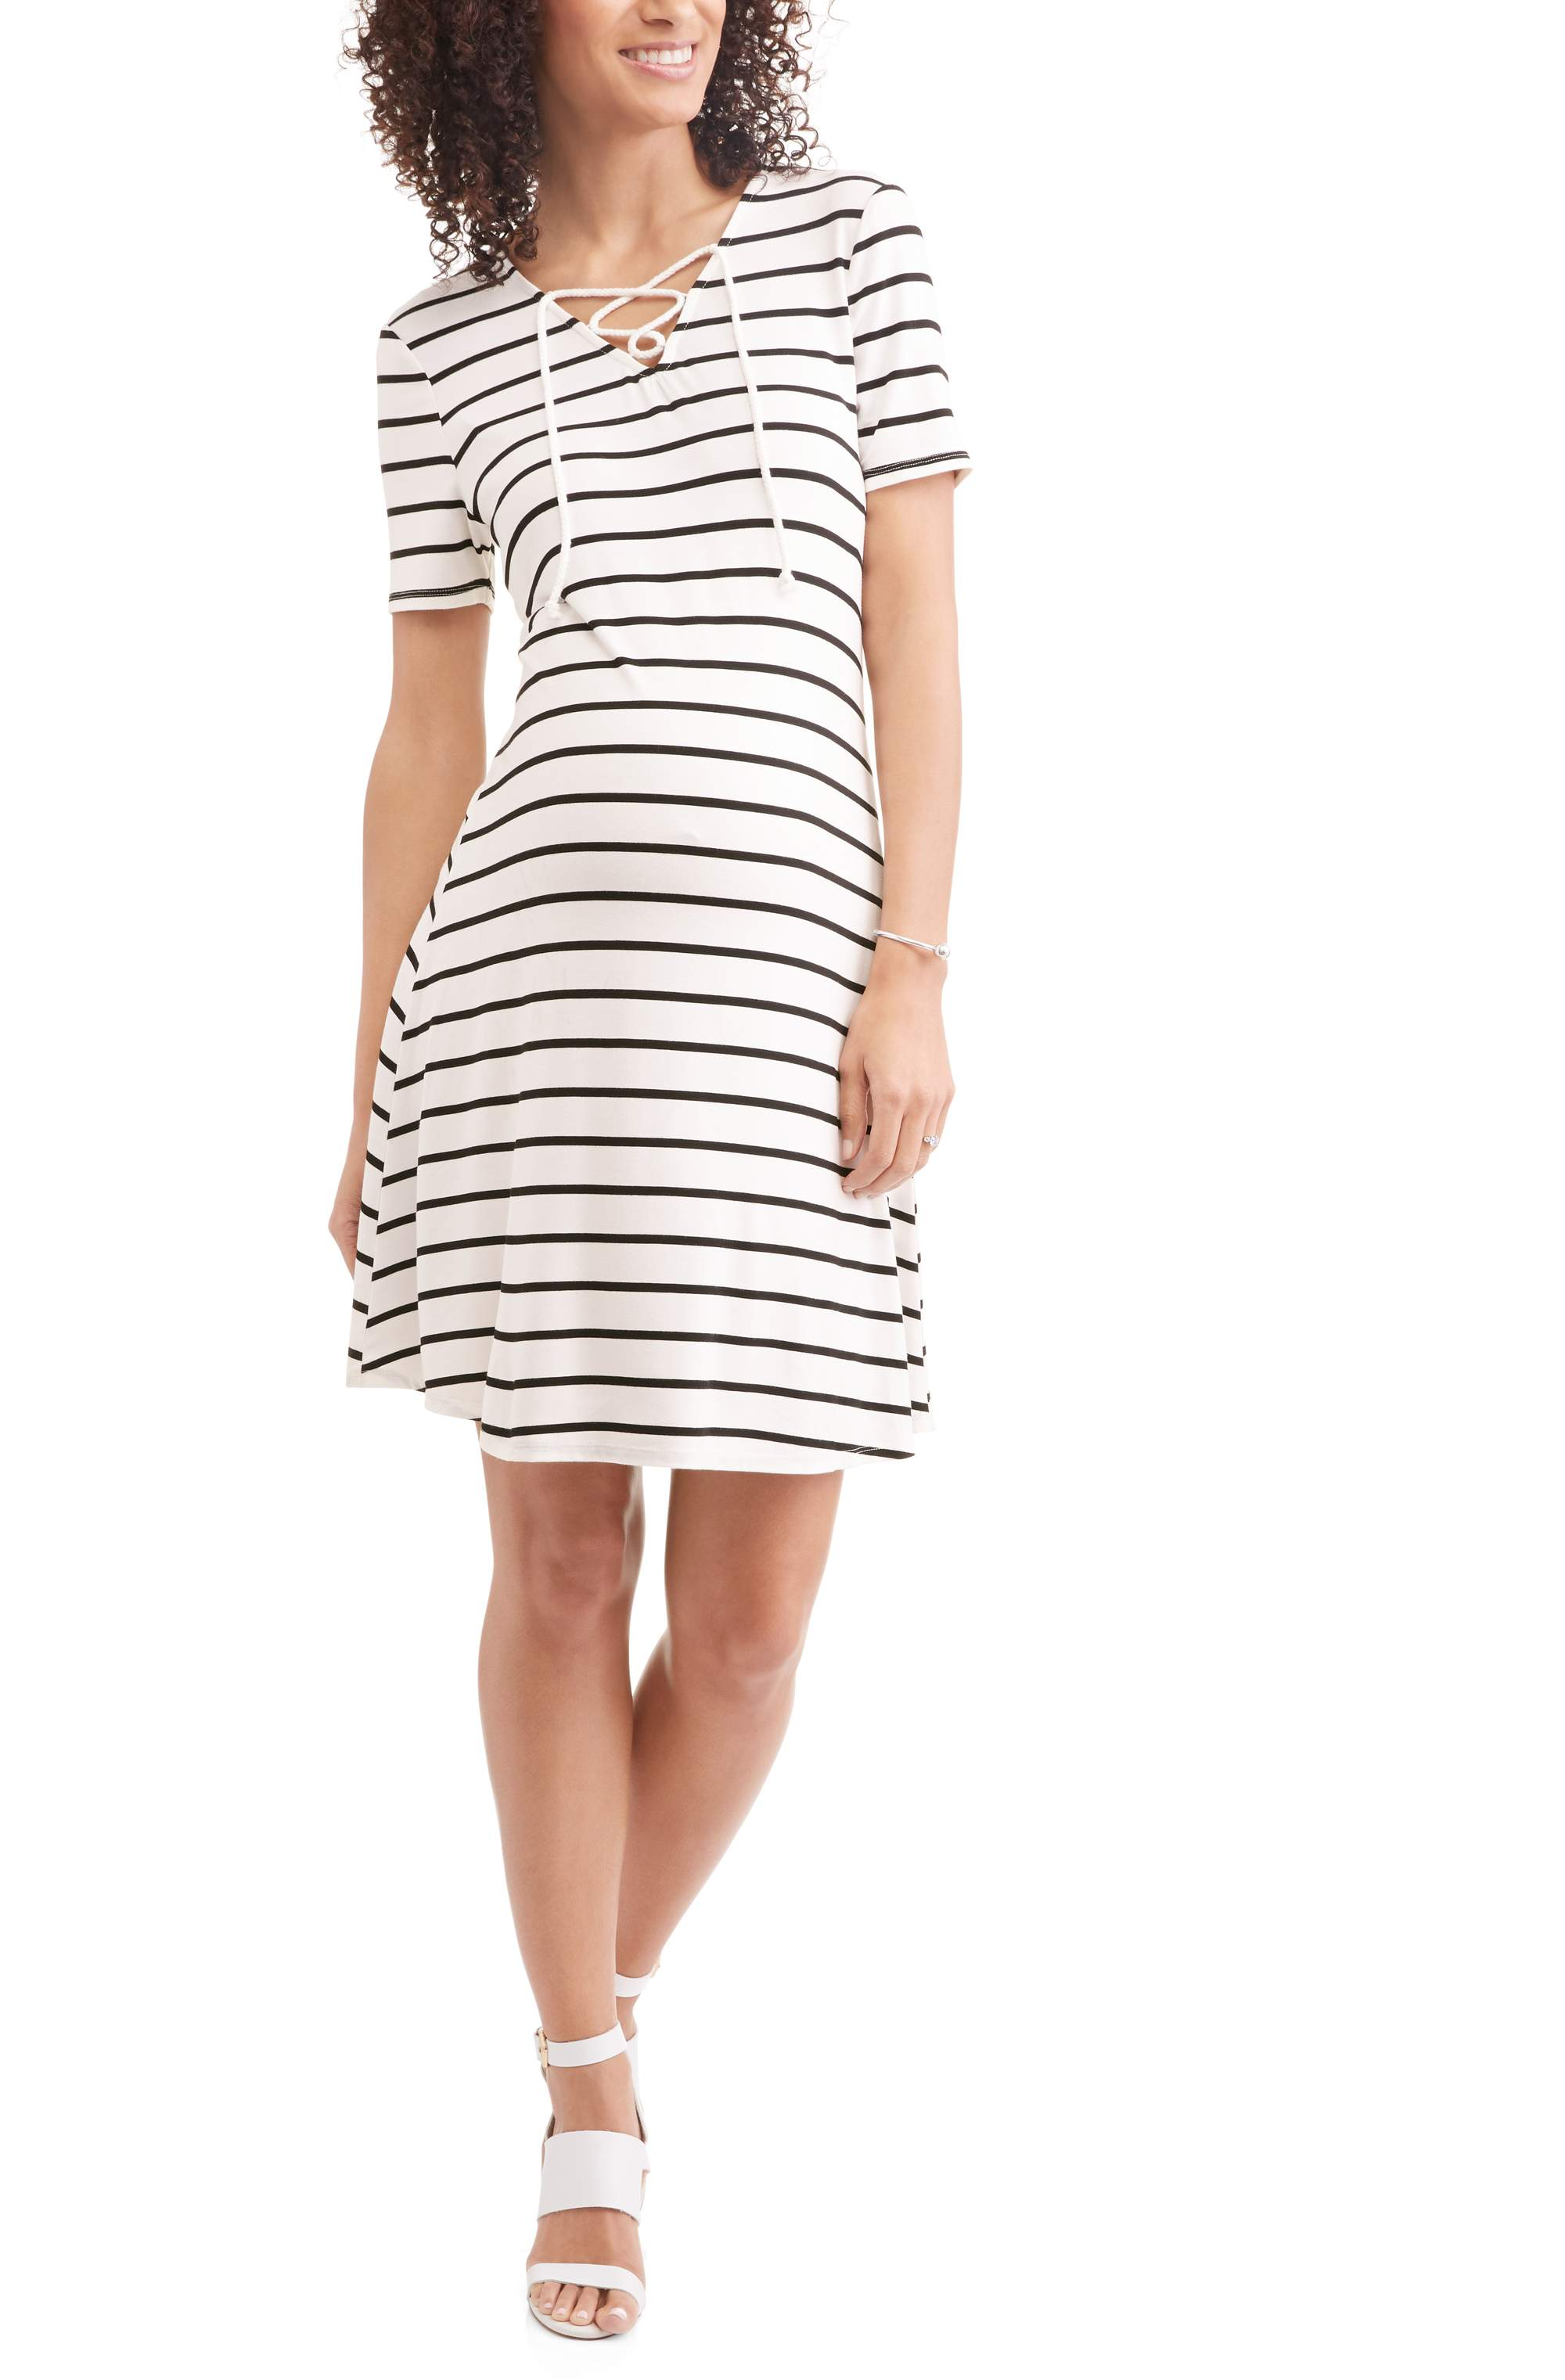 Maternity Lace Up Skater Dress by Generic